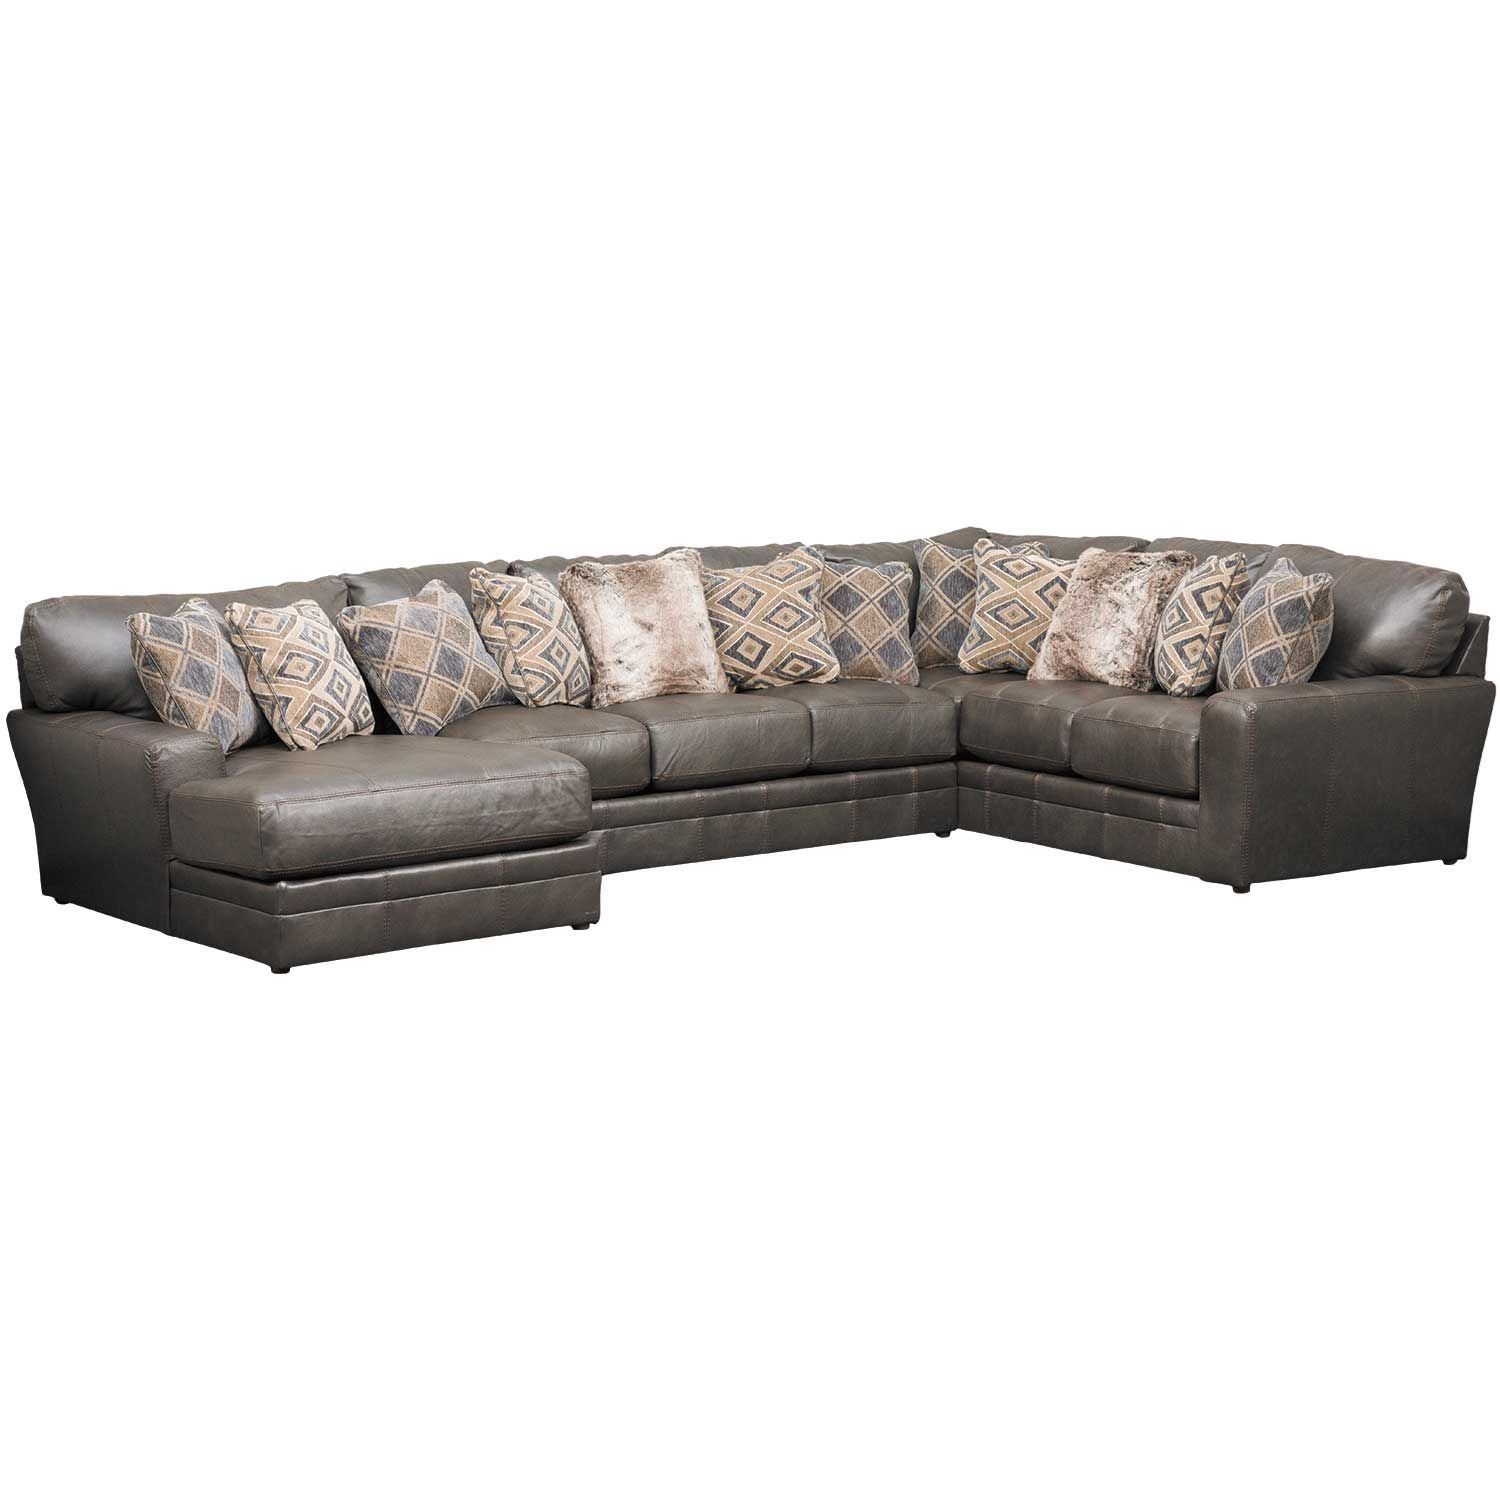 Denali 3 Piece Italian Leather Sectional With Laf Chaise Intended For Norfolk Grey 3 Piece Sectionals With Laf Chaise (View 4 of 15)